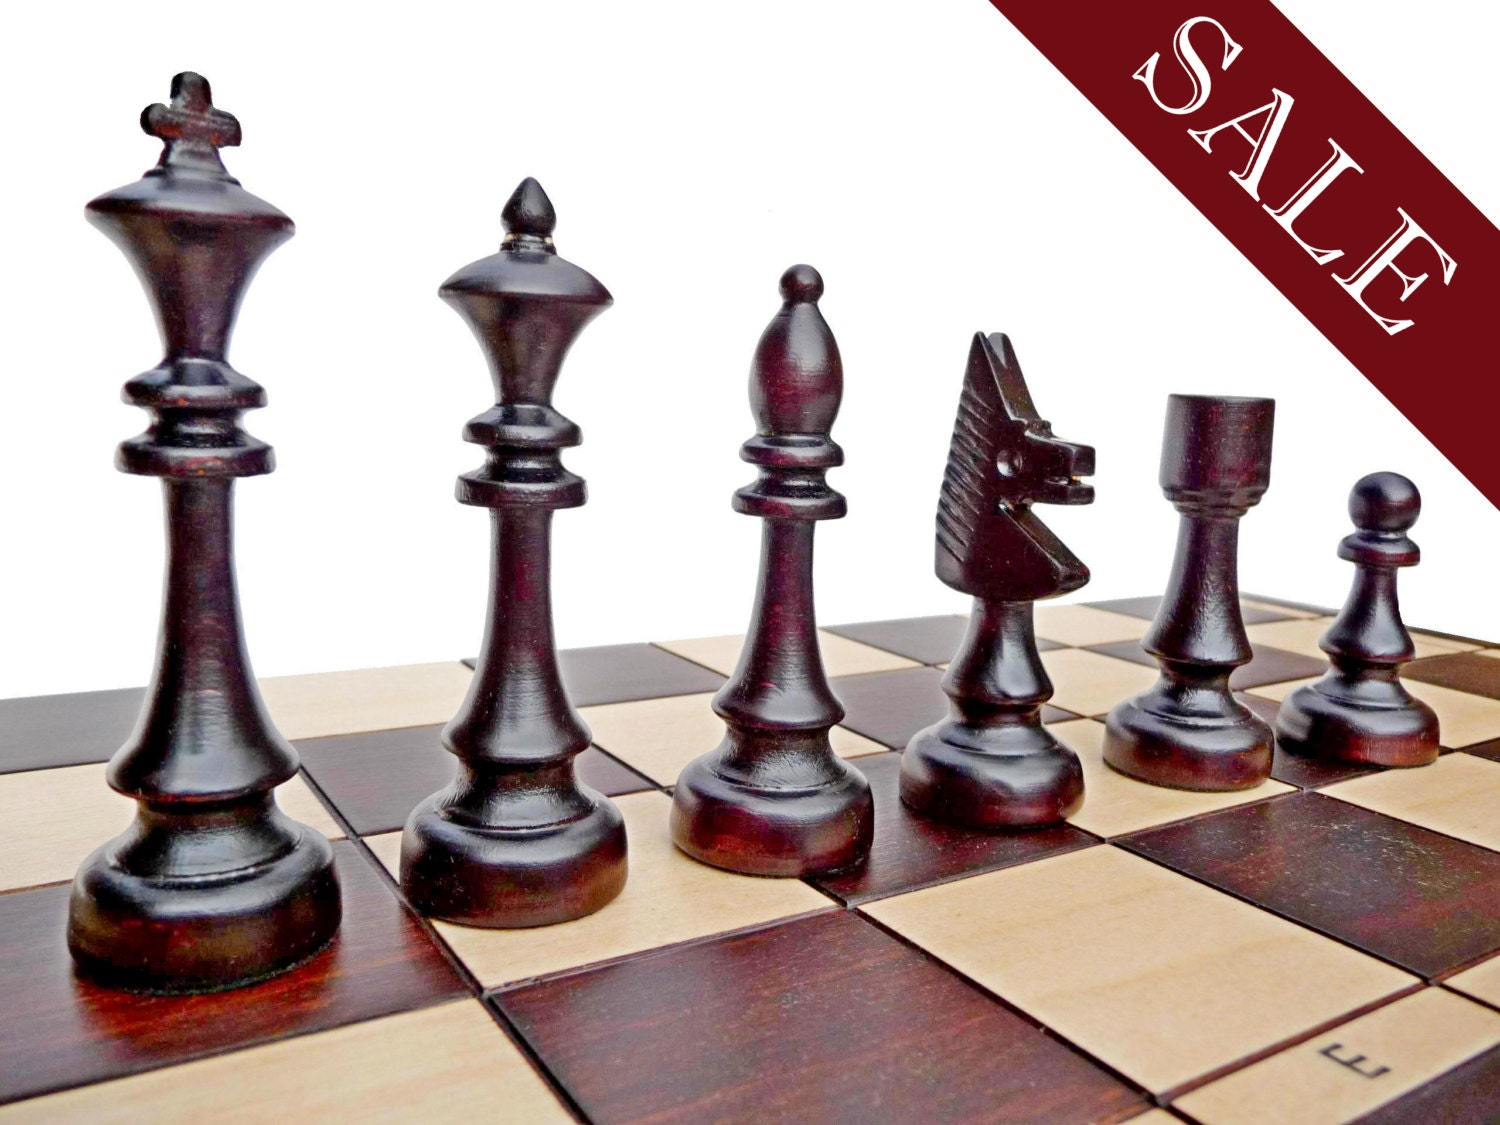 Stylish Wooden Chess Set Hand Crafted 48x48cm By Stylishchess